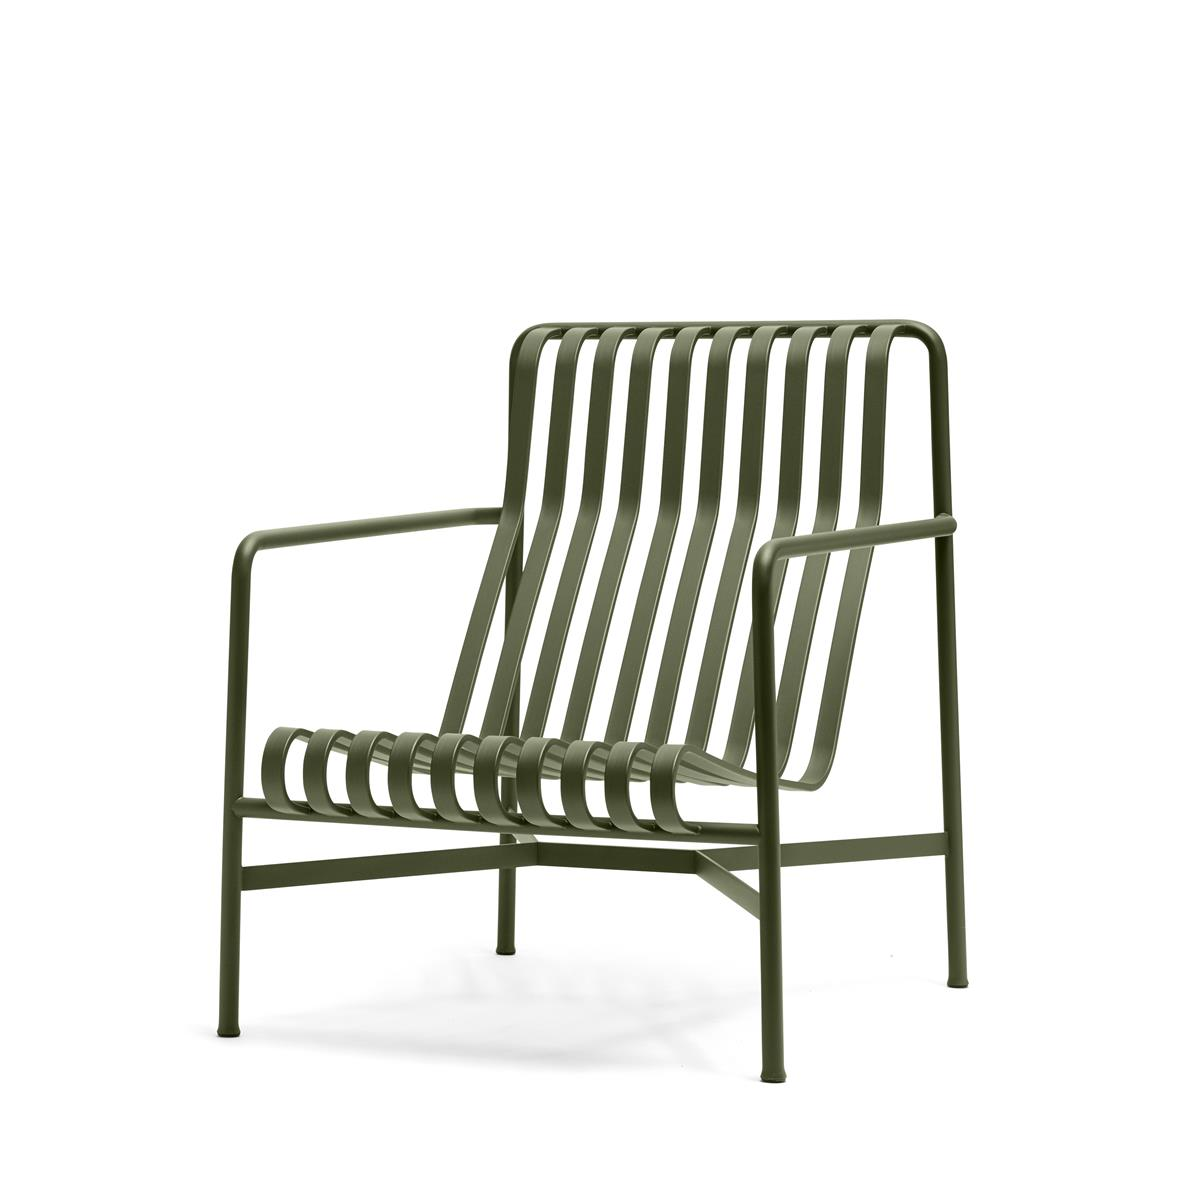 Palissade Lounge Chair High - Olive